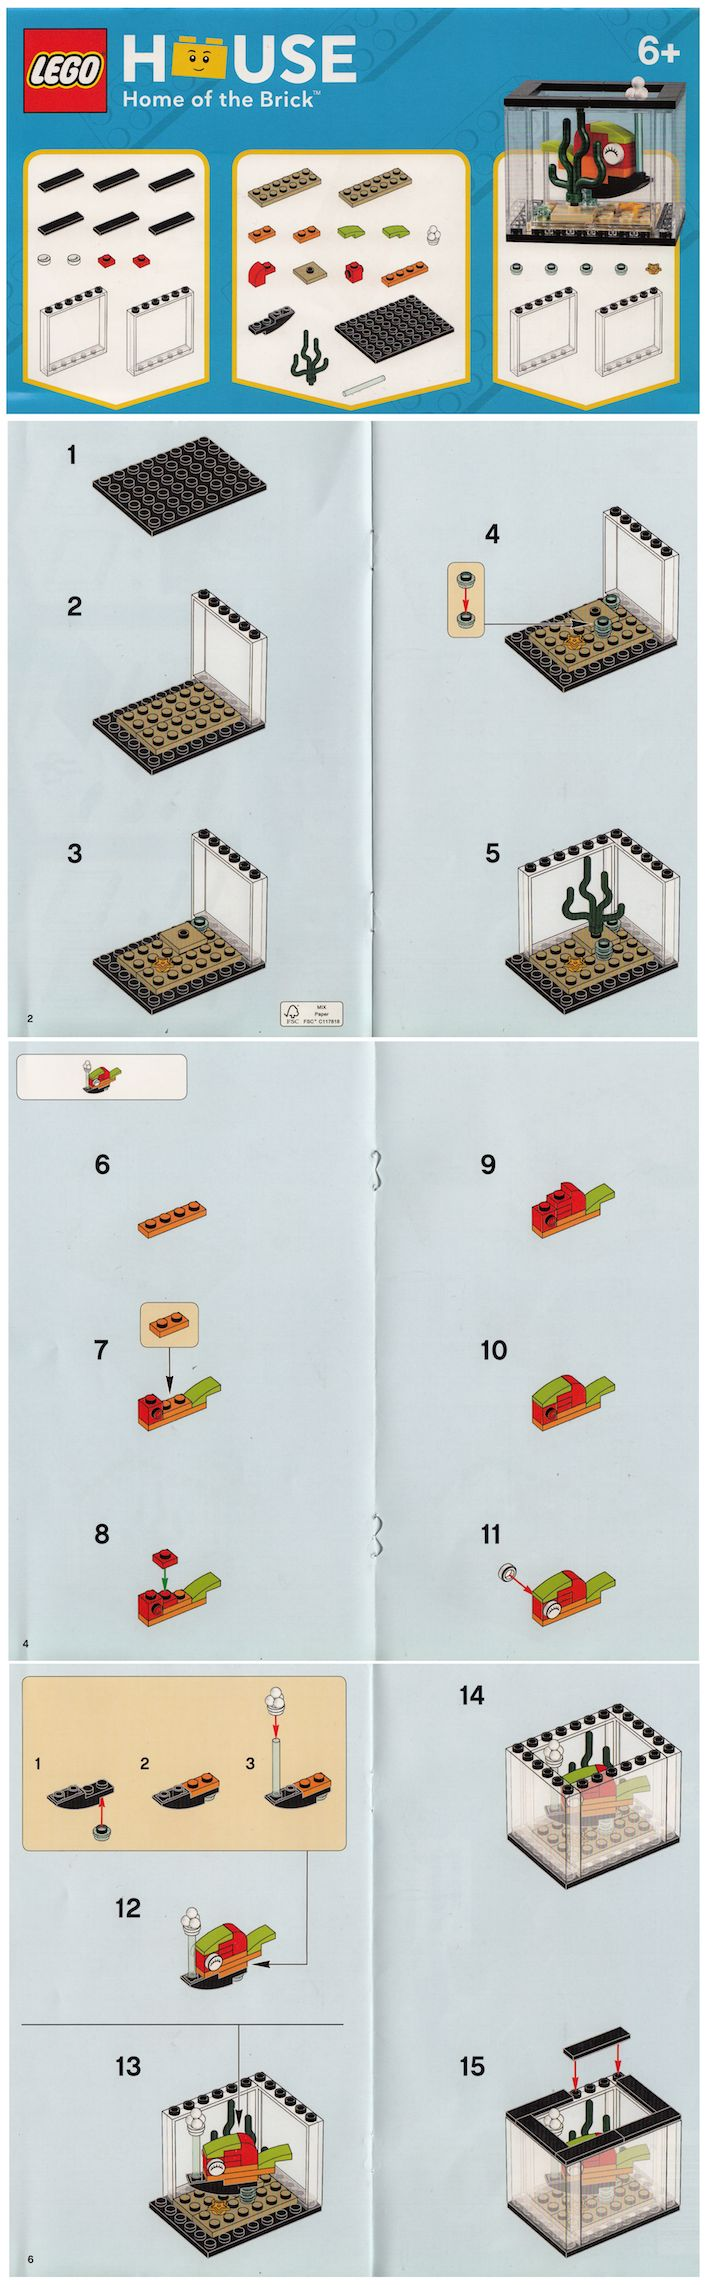 LEGO House Exclusive Pick-A-Model Instructions [News]